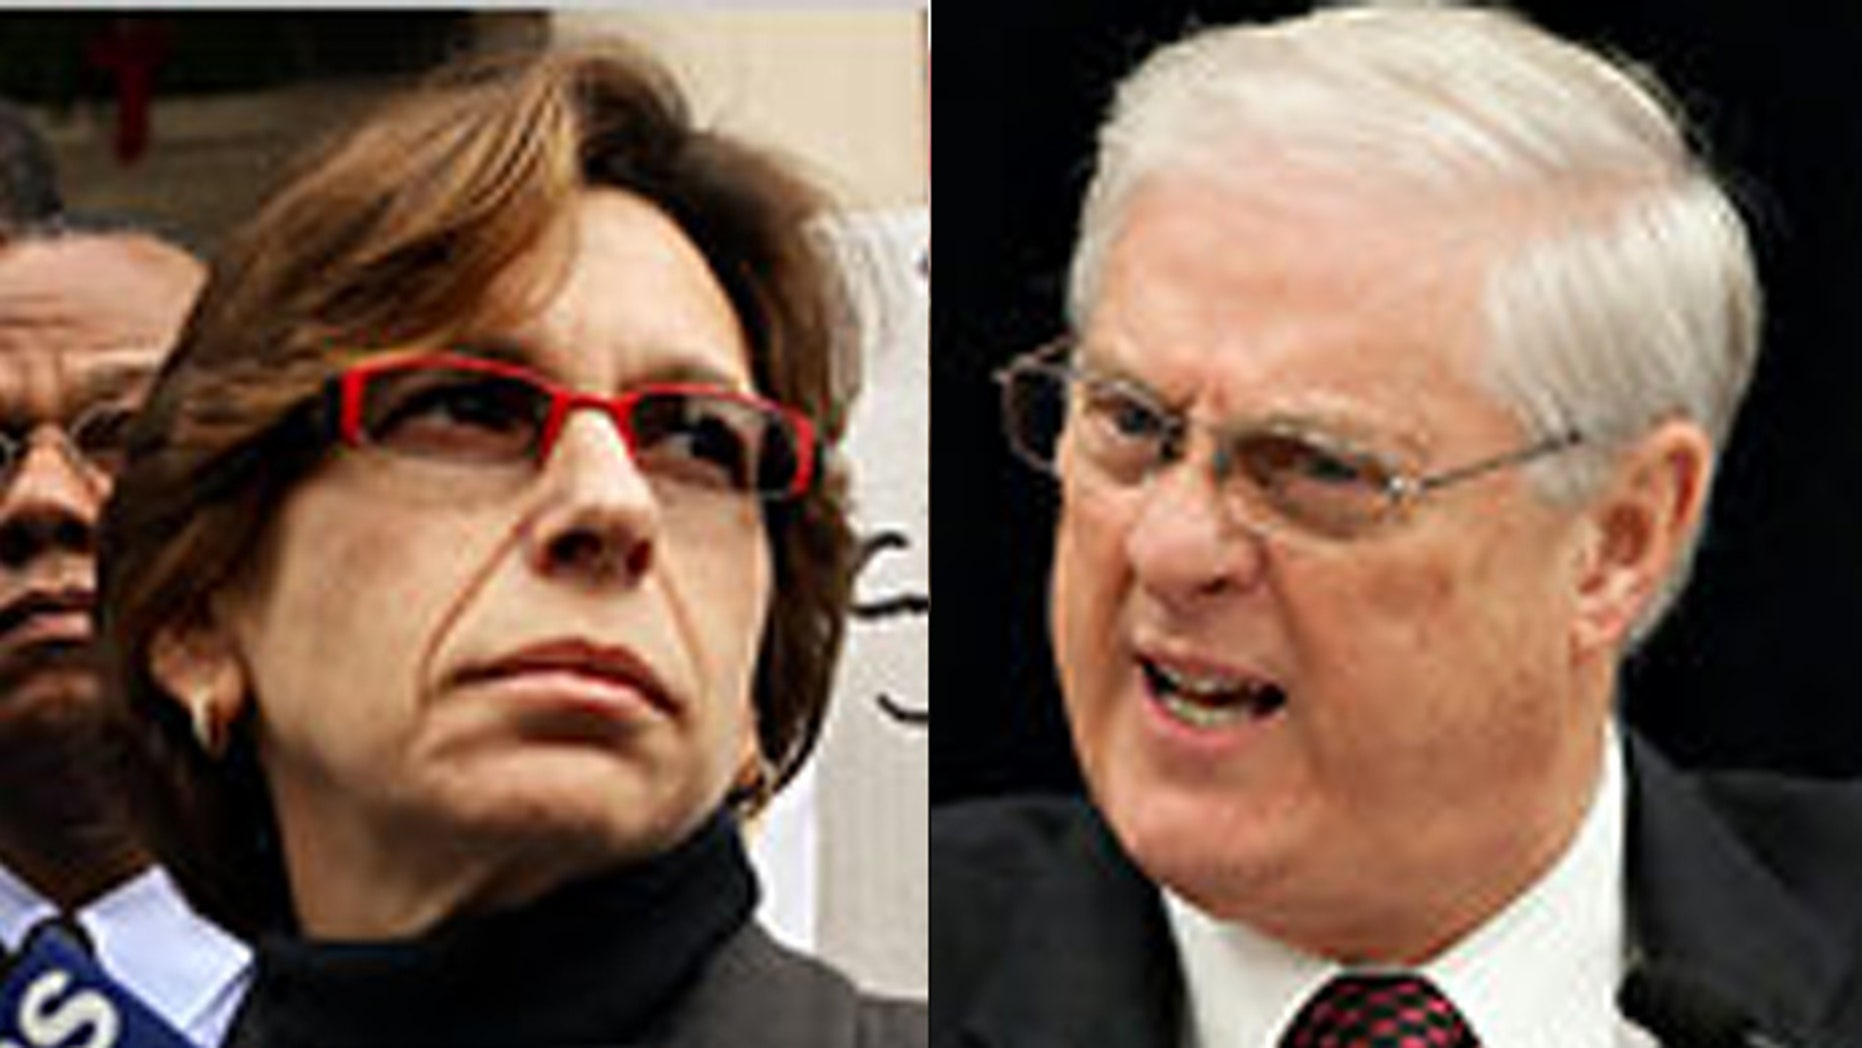 Randi Weingarten, president of the American Federation of Teachers, and the National Education Association's Dennis Van Roekel, earn nearly $500,000 apiece.